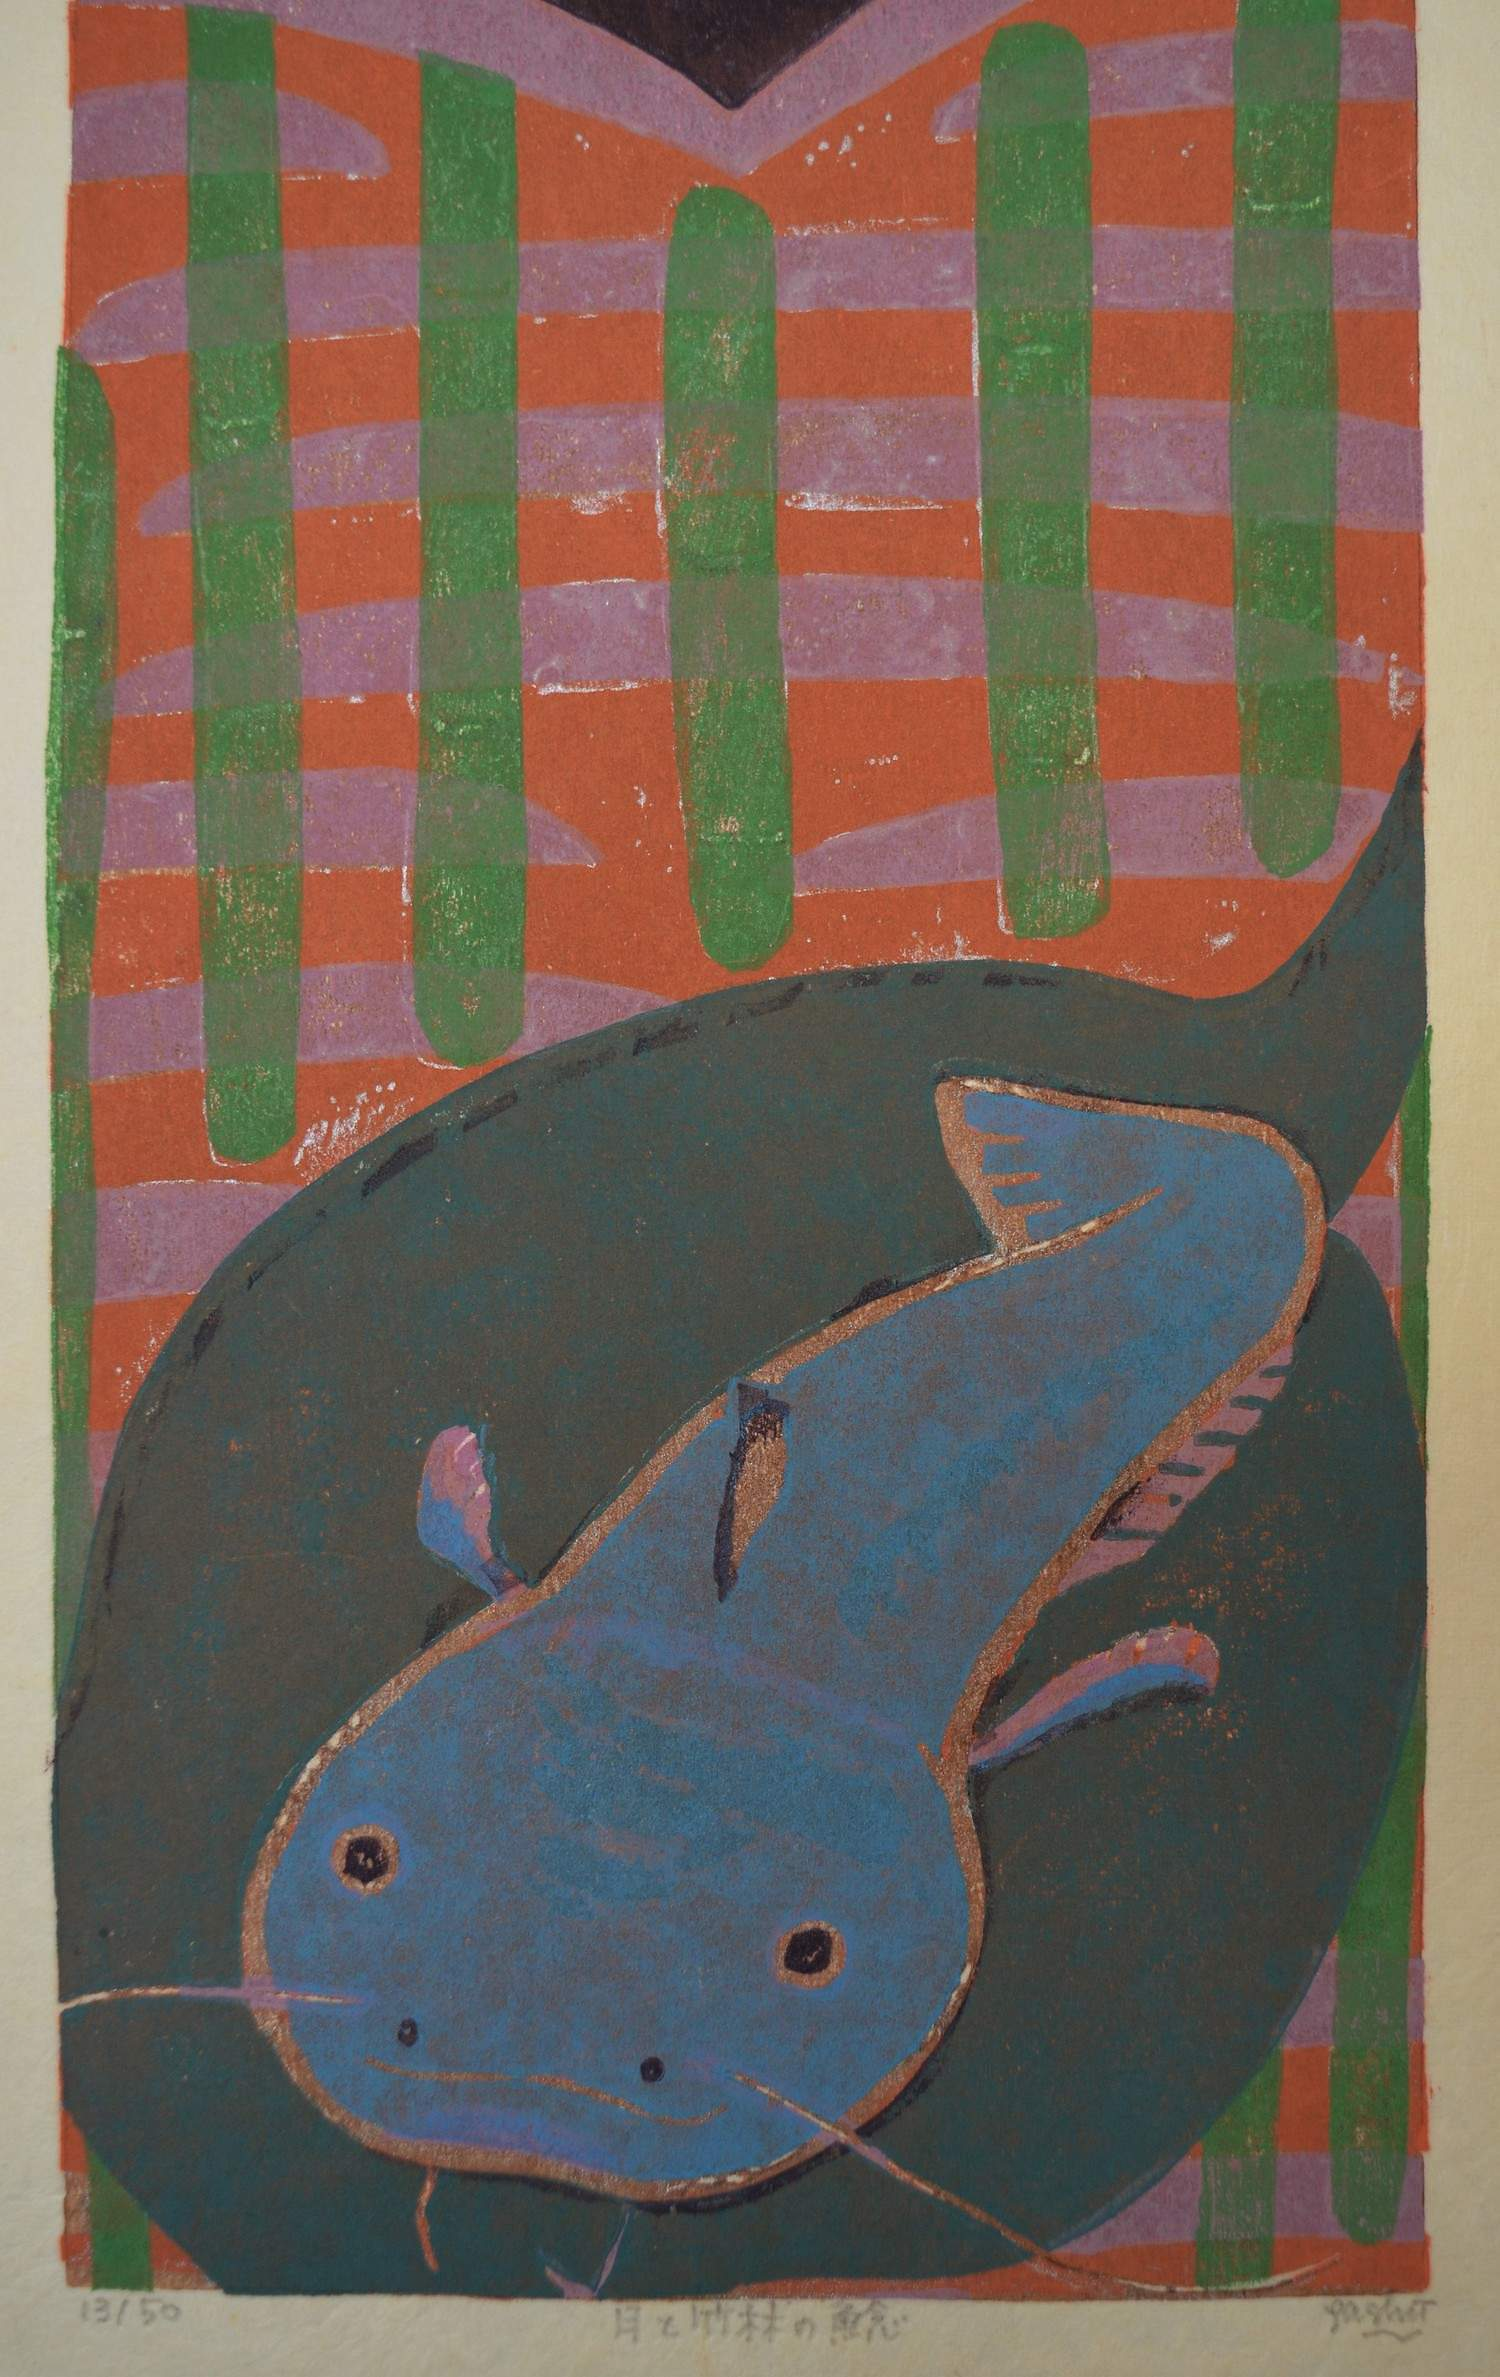 Gashu Fukami: Catfish with Moon and Bamboo